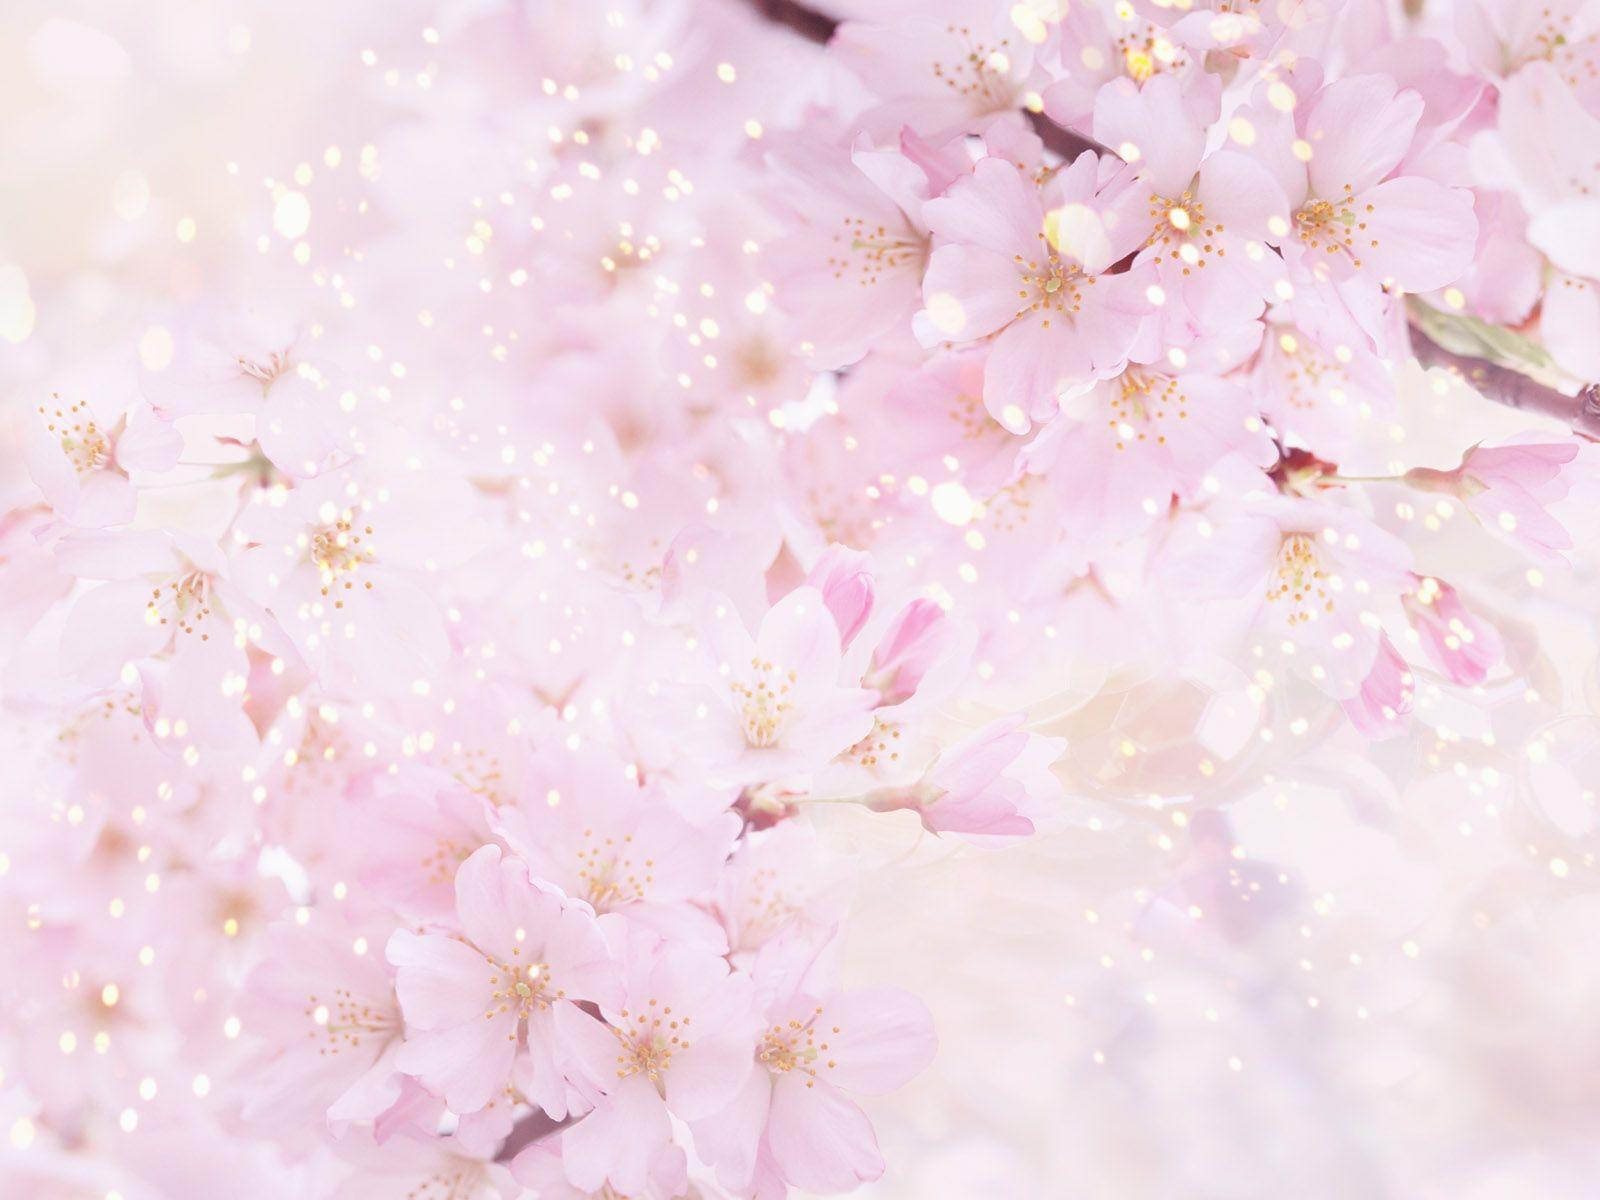 Anime Cherry Blossom Wallpaper Images & Pictures - Becuo